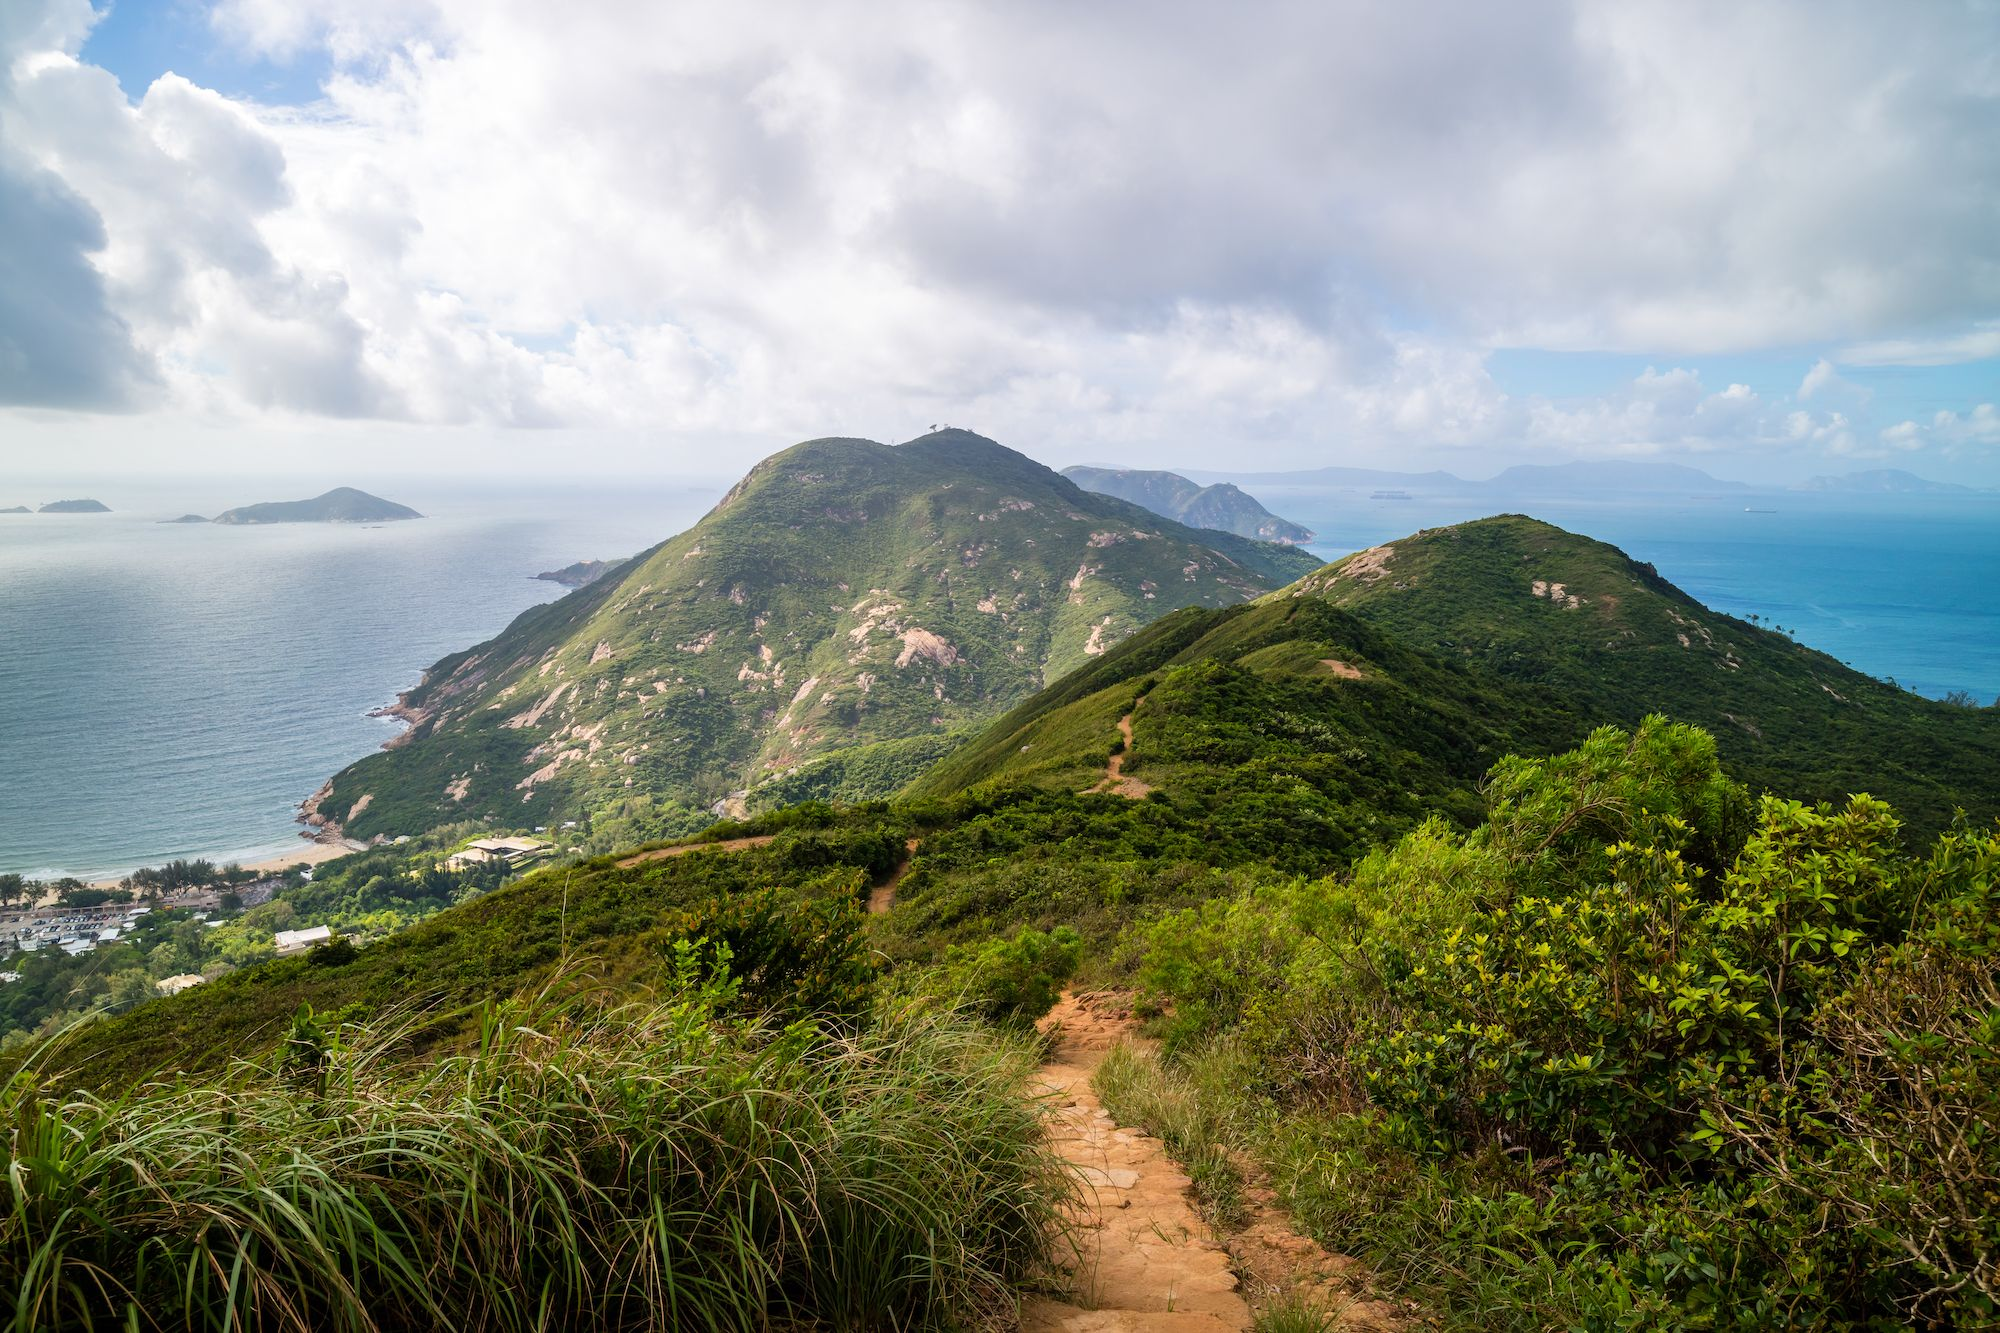 Beginner Hikes: 6 Easy Hiking Trails In Hong Kong